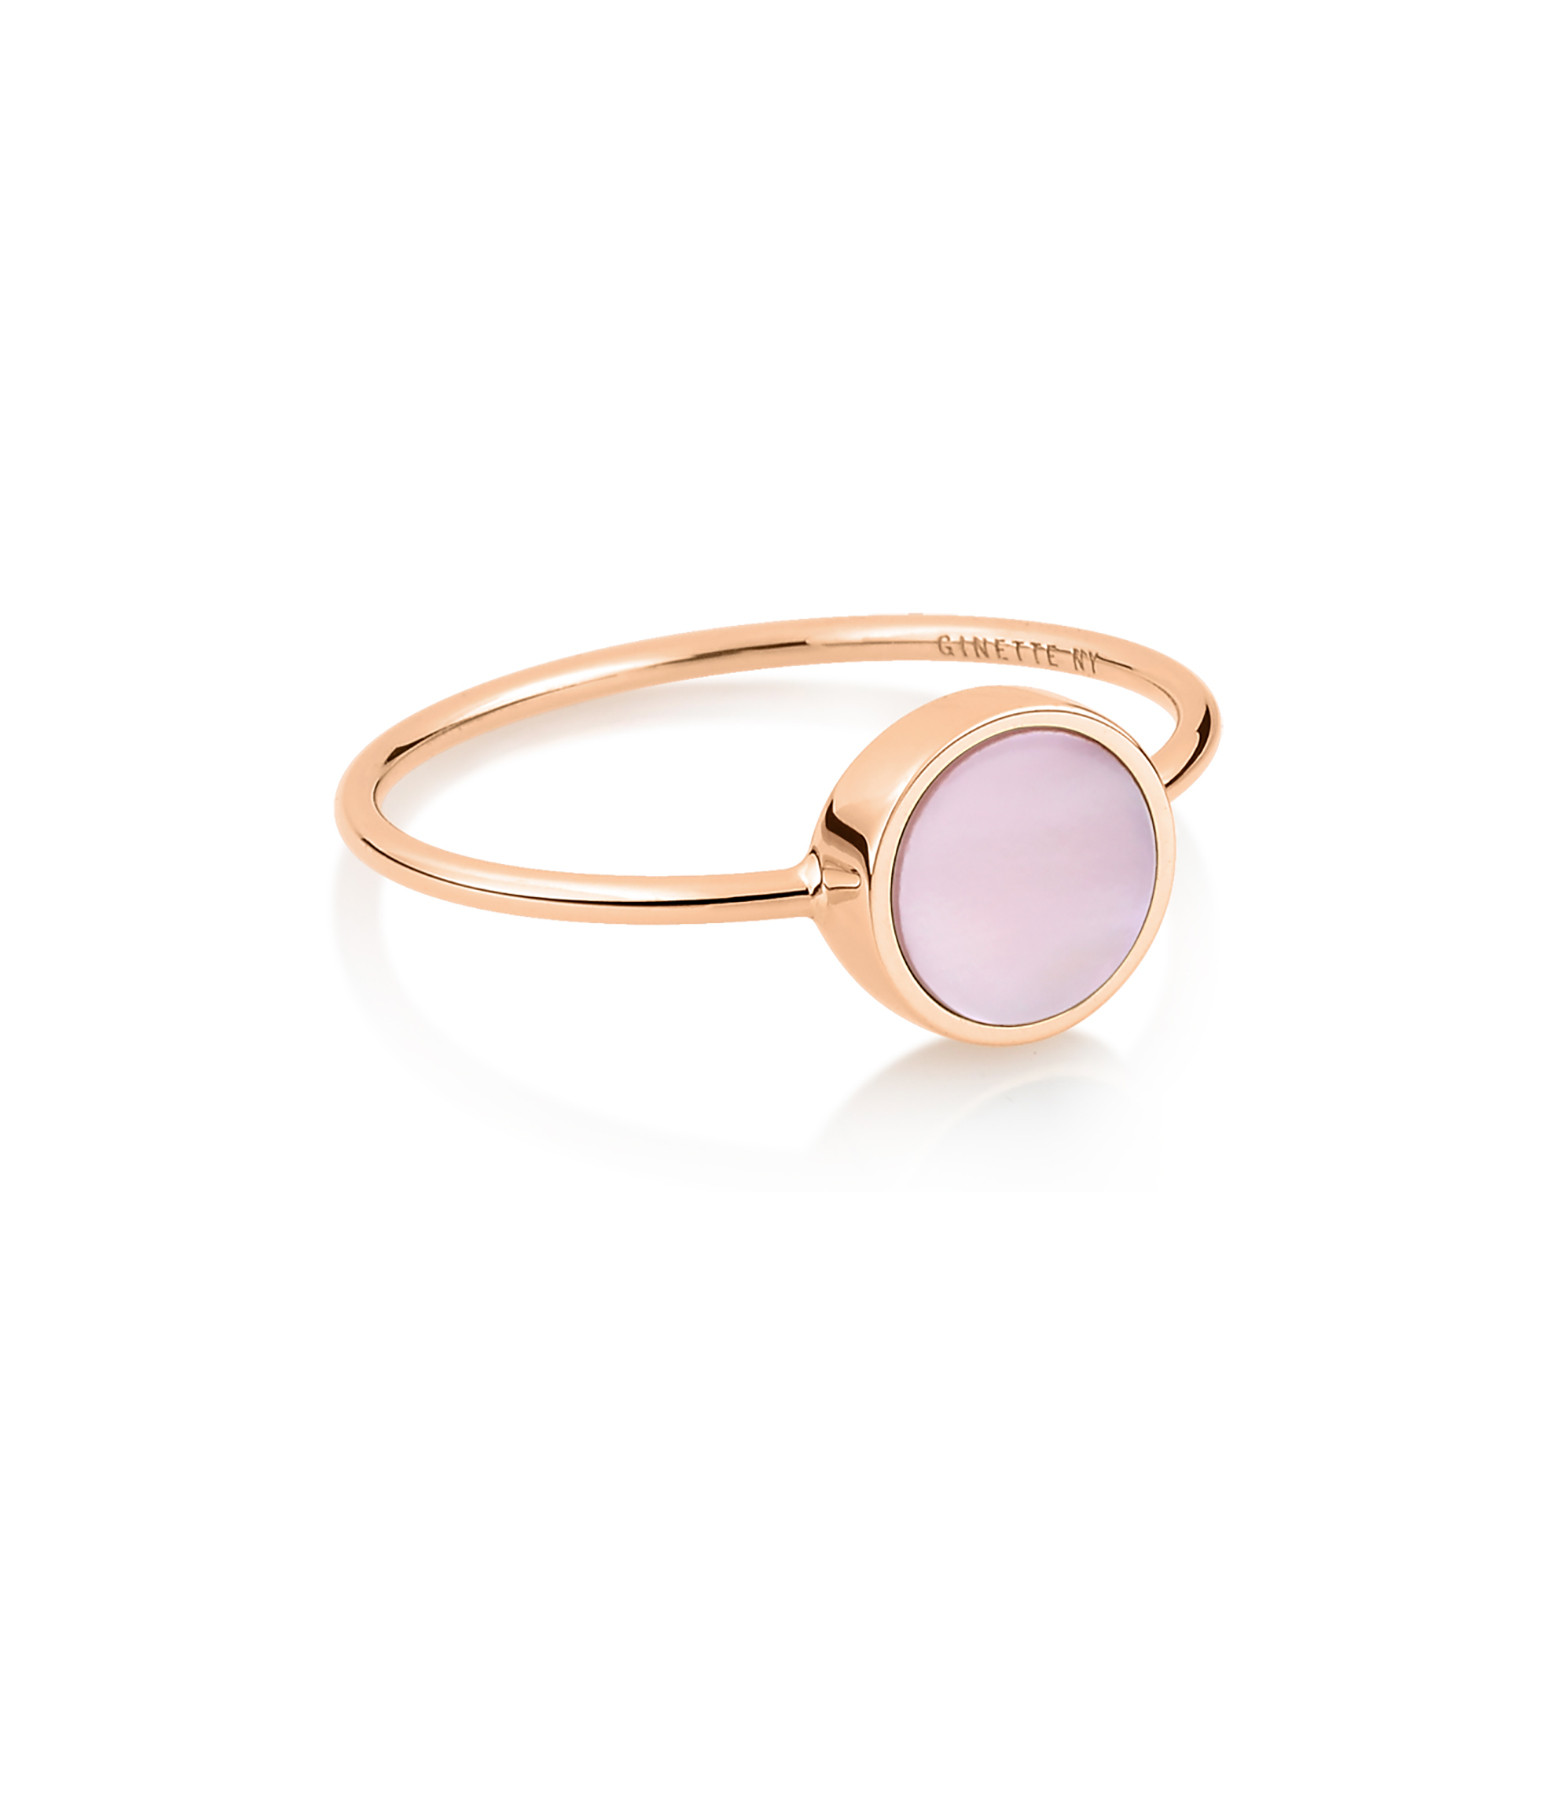 GINETTE NY - Bague Ever Mini Disc Or Rose Nacre Rose